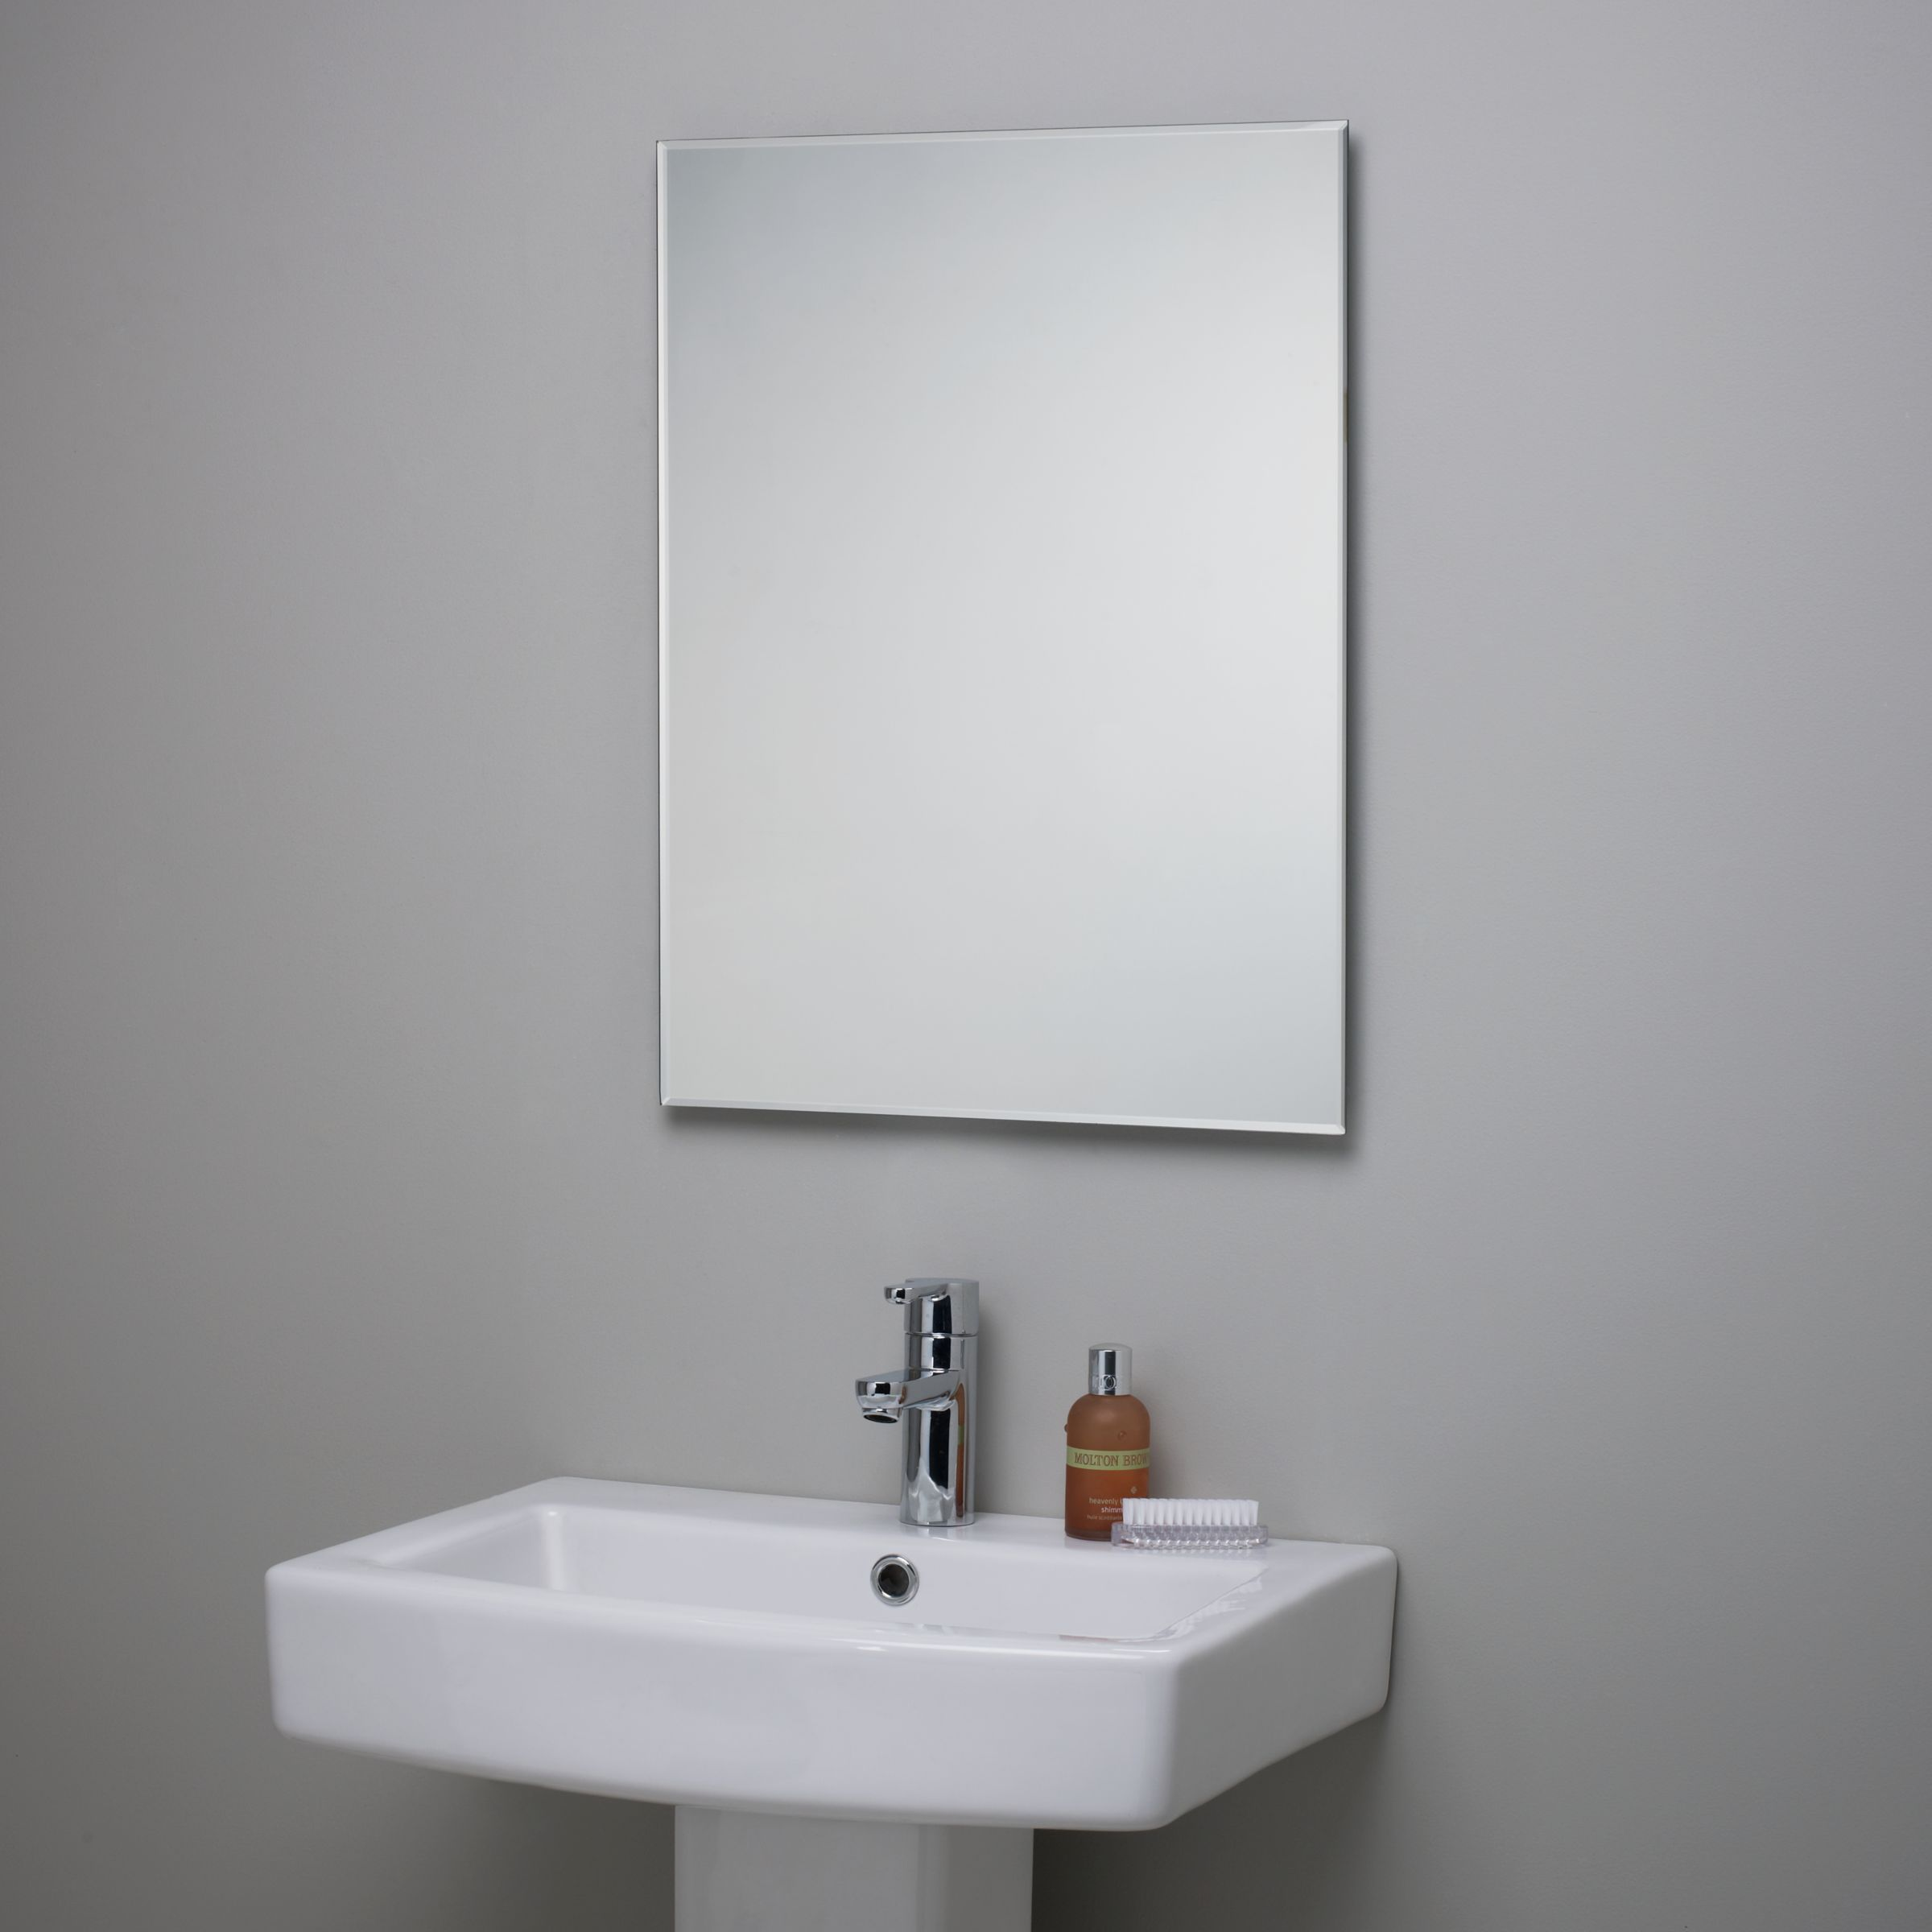 mirrors bathroom accessories at home bluewater